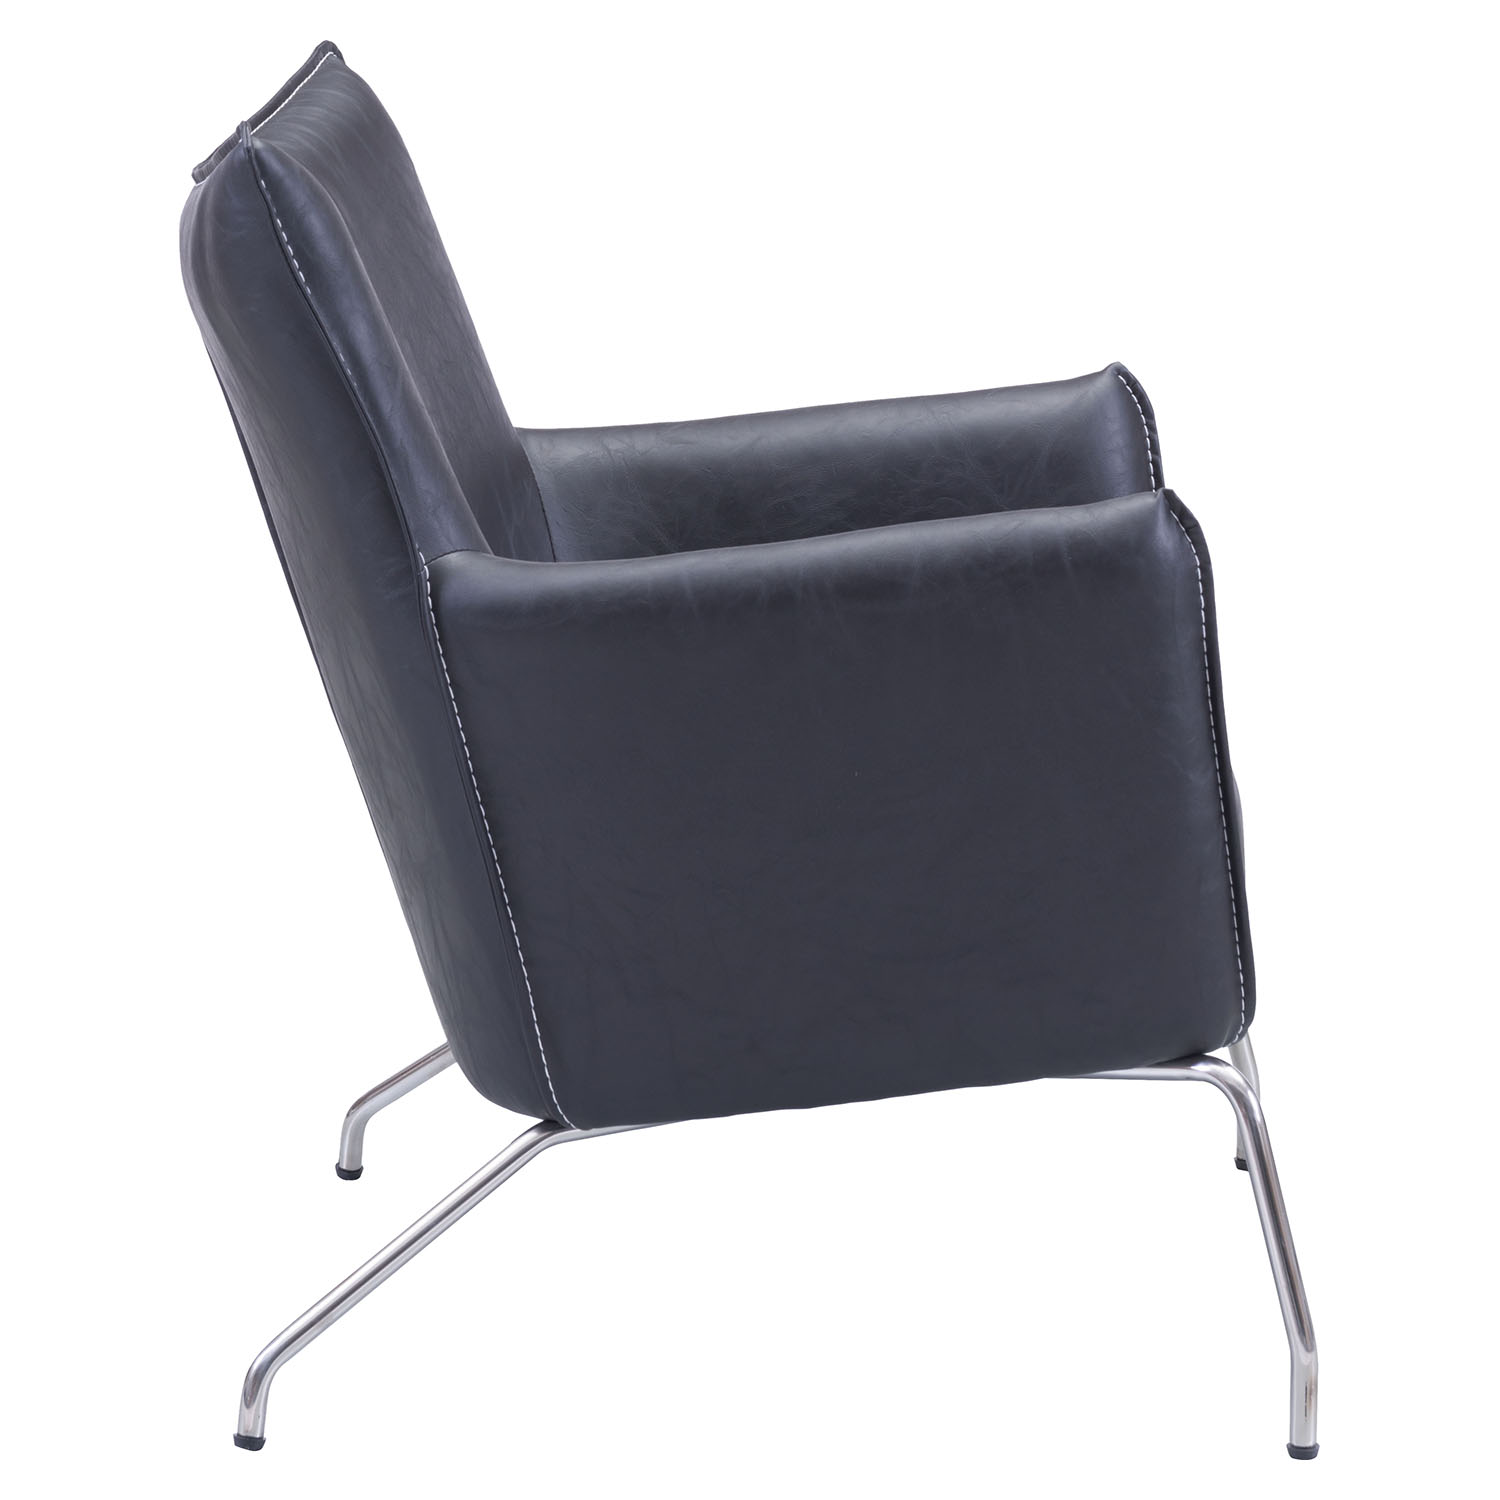 Ostend Occasional Chair - Volcano Gray - ZM-500508